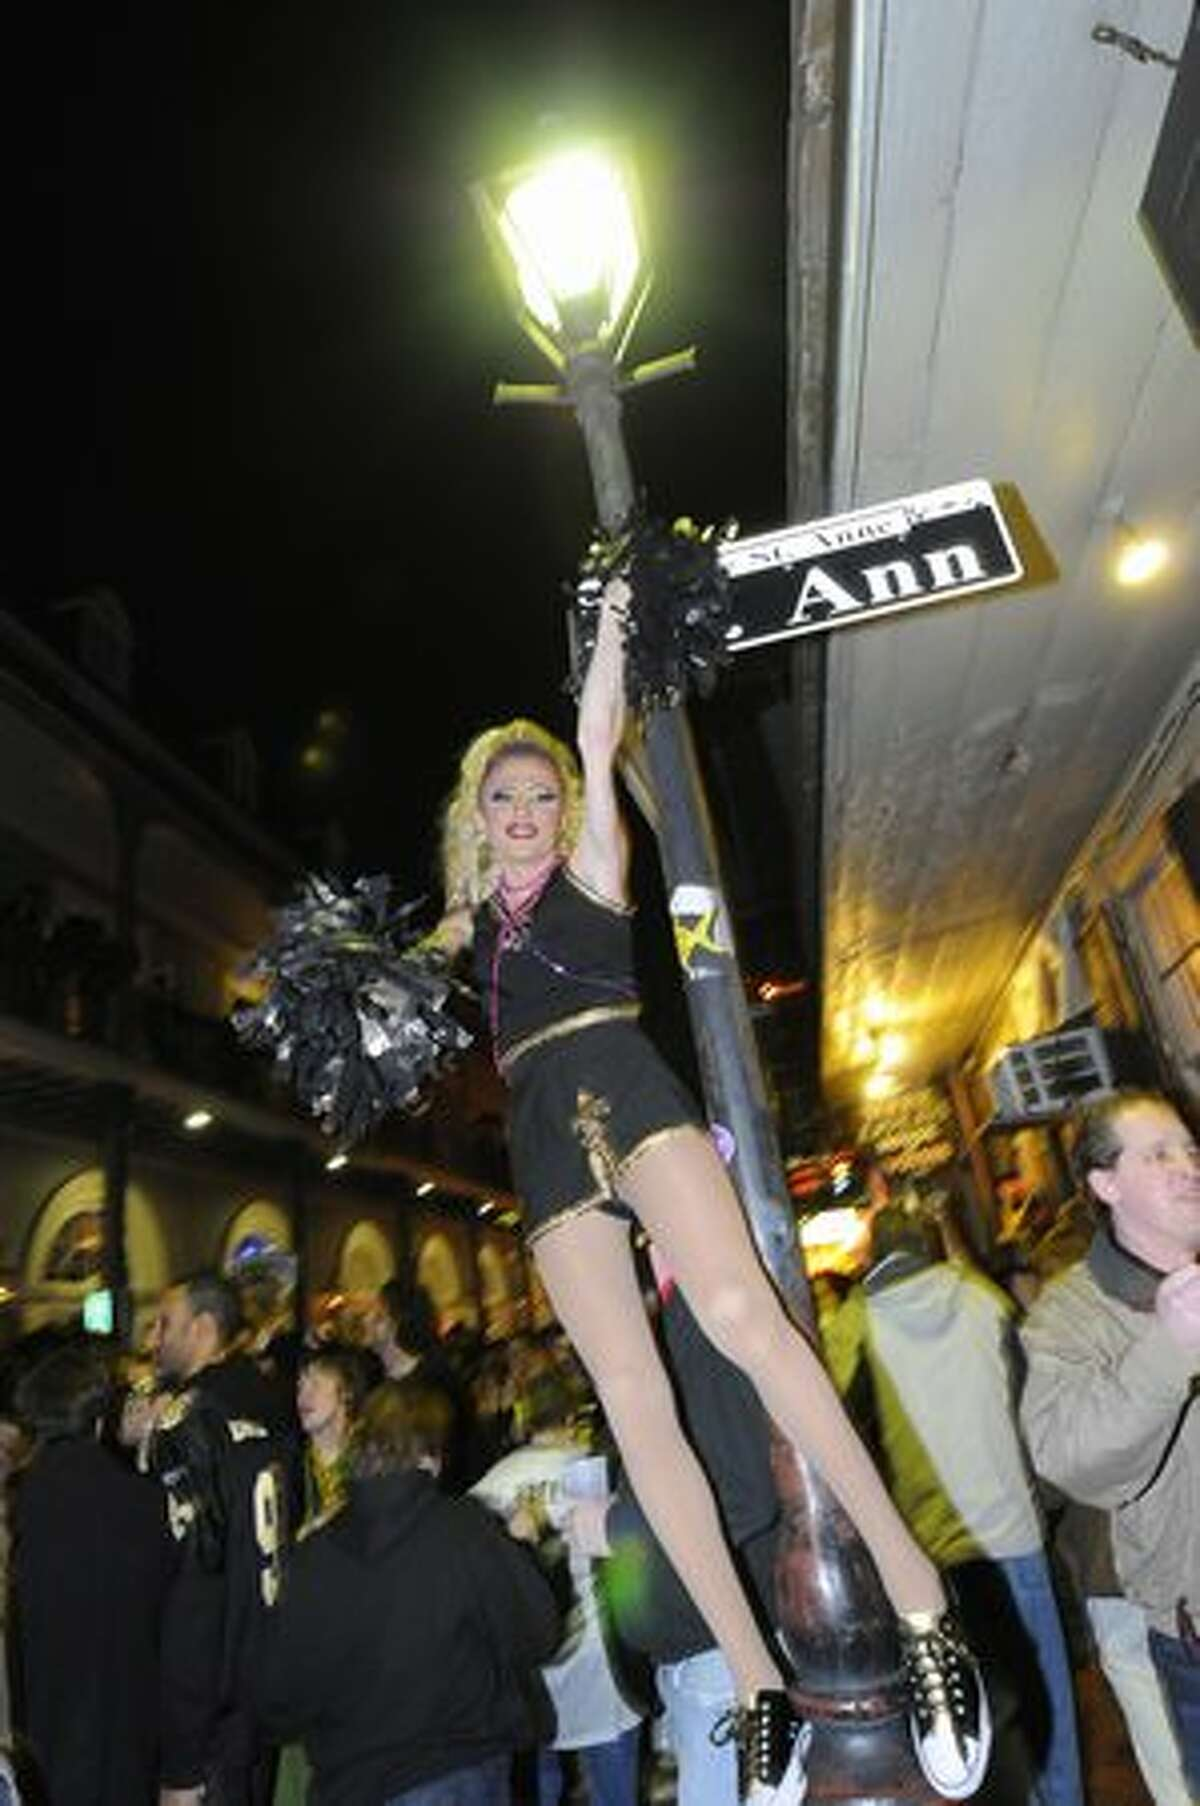 Fans celebrate the New Orleans Saints win against the Indianapolis Colts on Bourbon Street in the French Quarter.